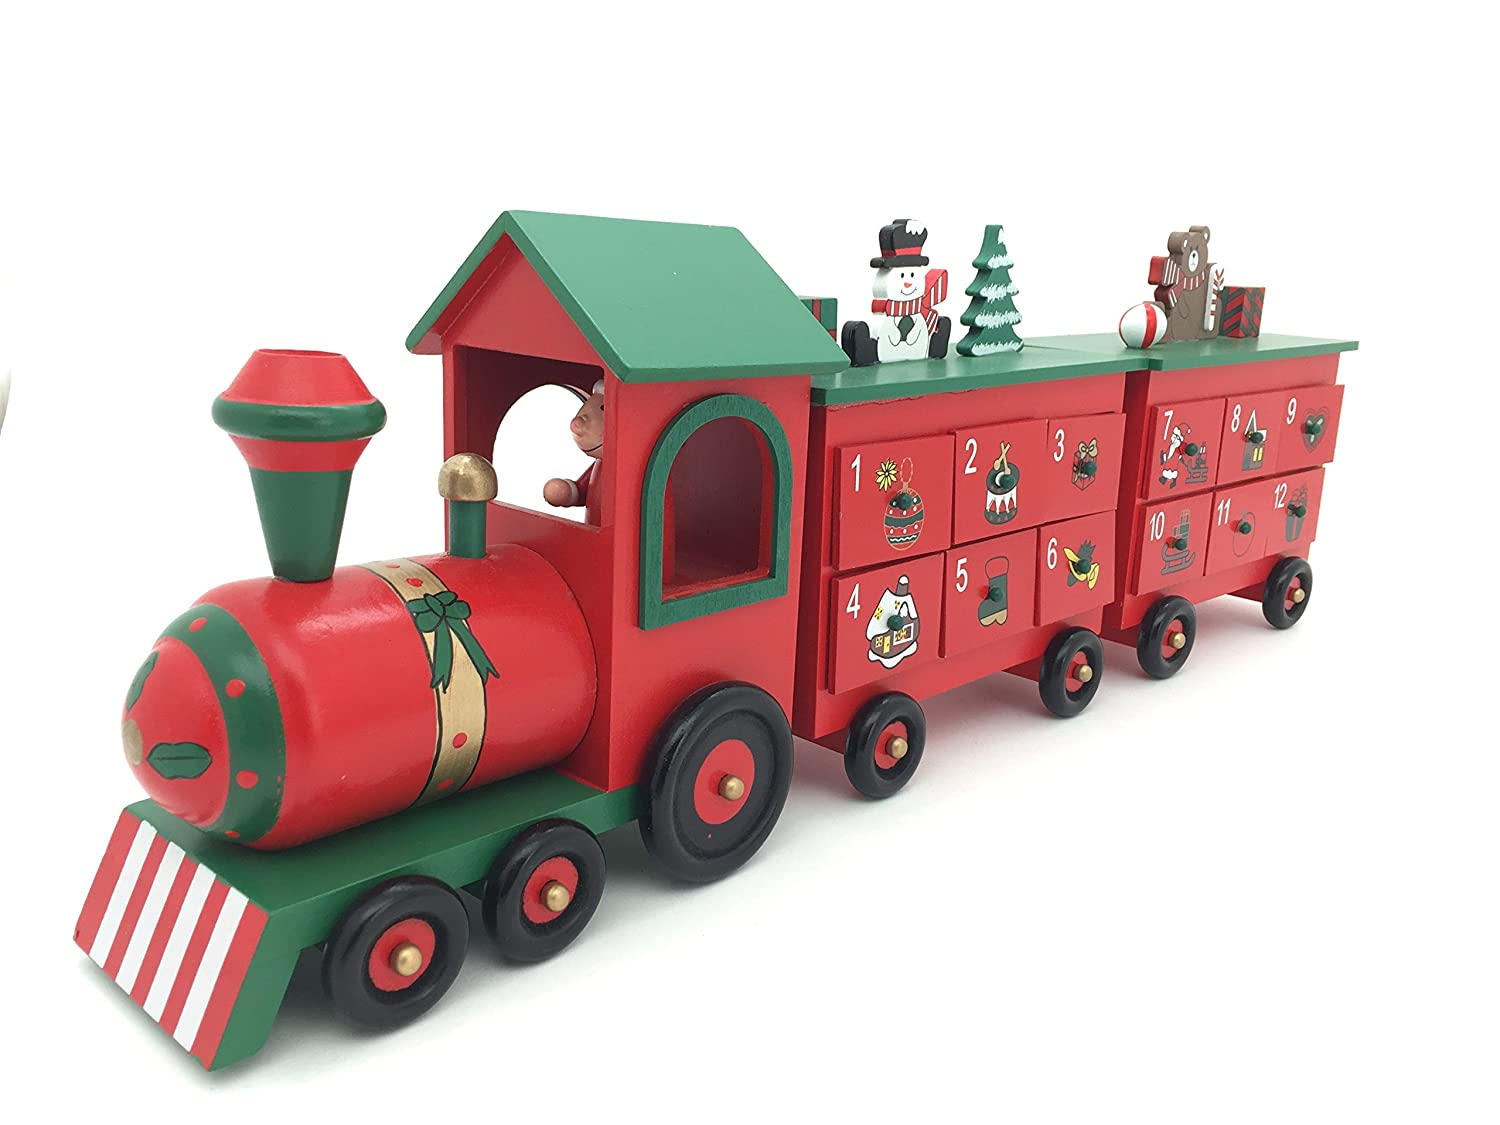 24 Inch Length Wood Advent Calendar Train for Christmas Decoration with 24 Drawers Pioneer Effort Ltd PE-1200139